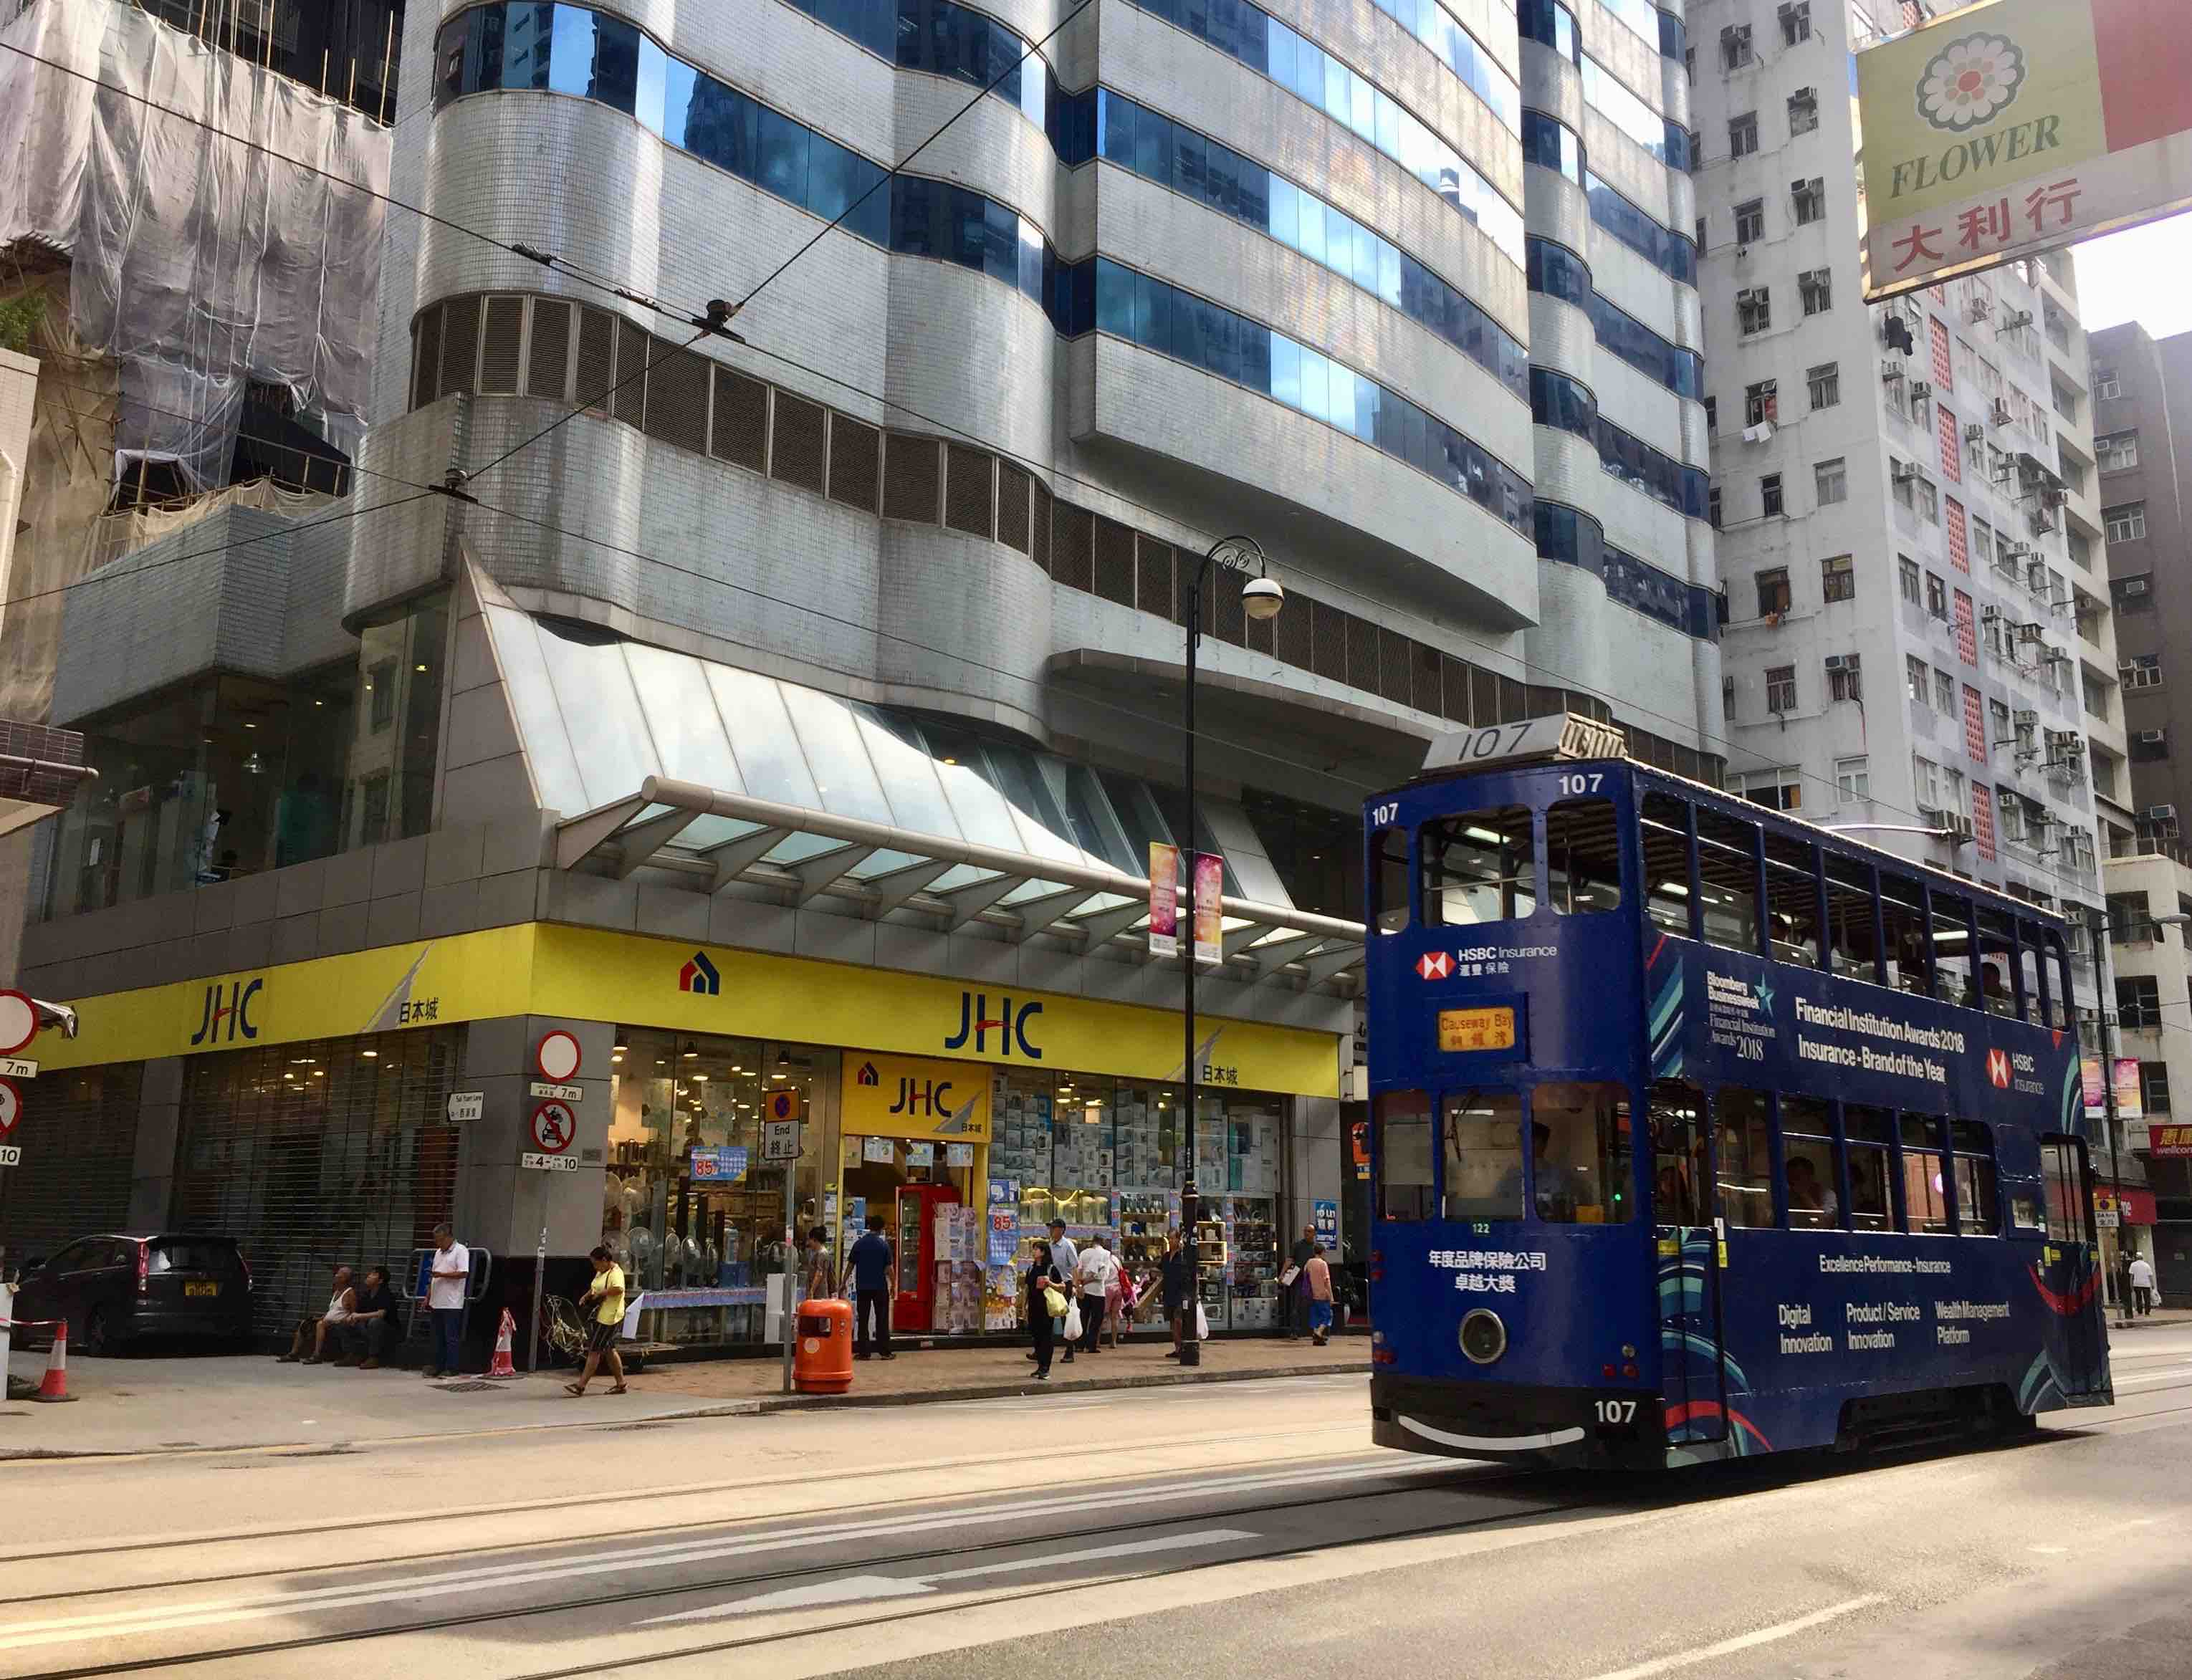 Open Terrace Restaurant Space for Rent in Sai Ying Pun Hong Kong